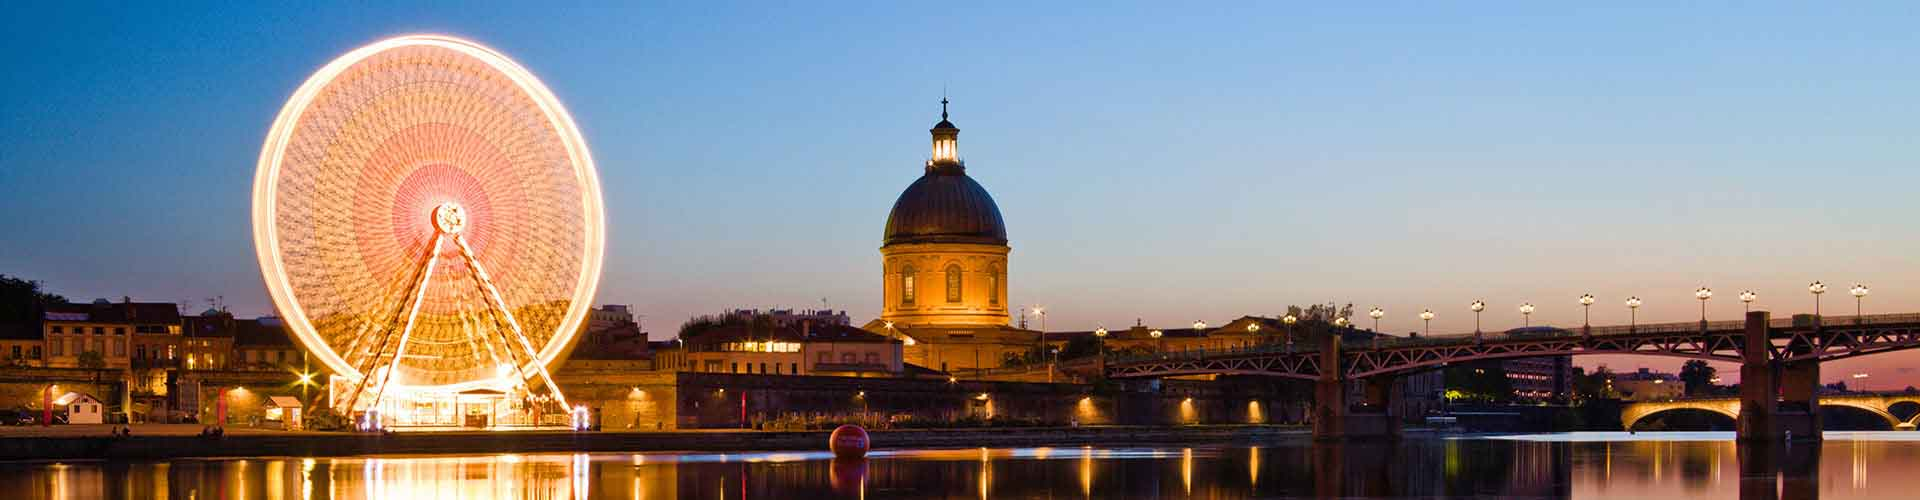 Toulouse – Albergues no Belfort bairro. Maps for Toulouse, Photos and Reviews for each Hotel in Toulouse.